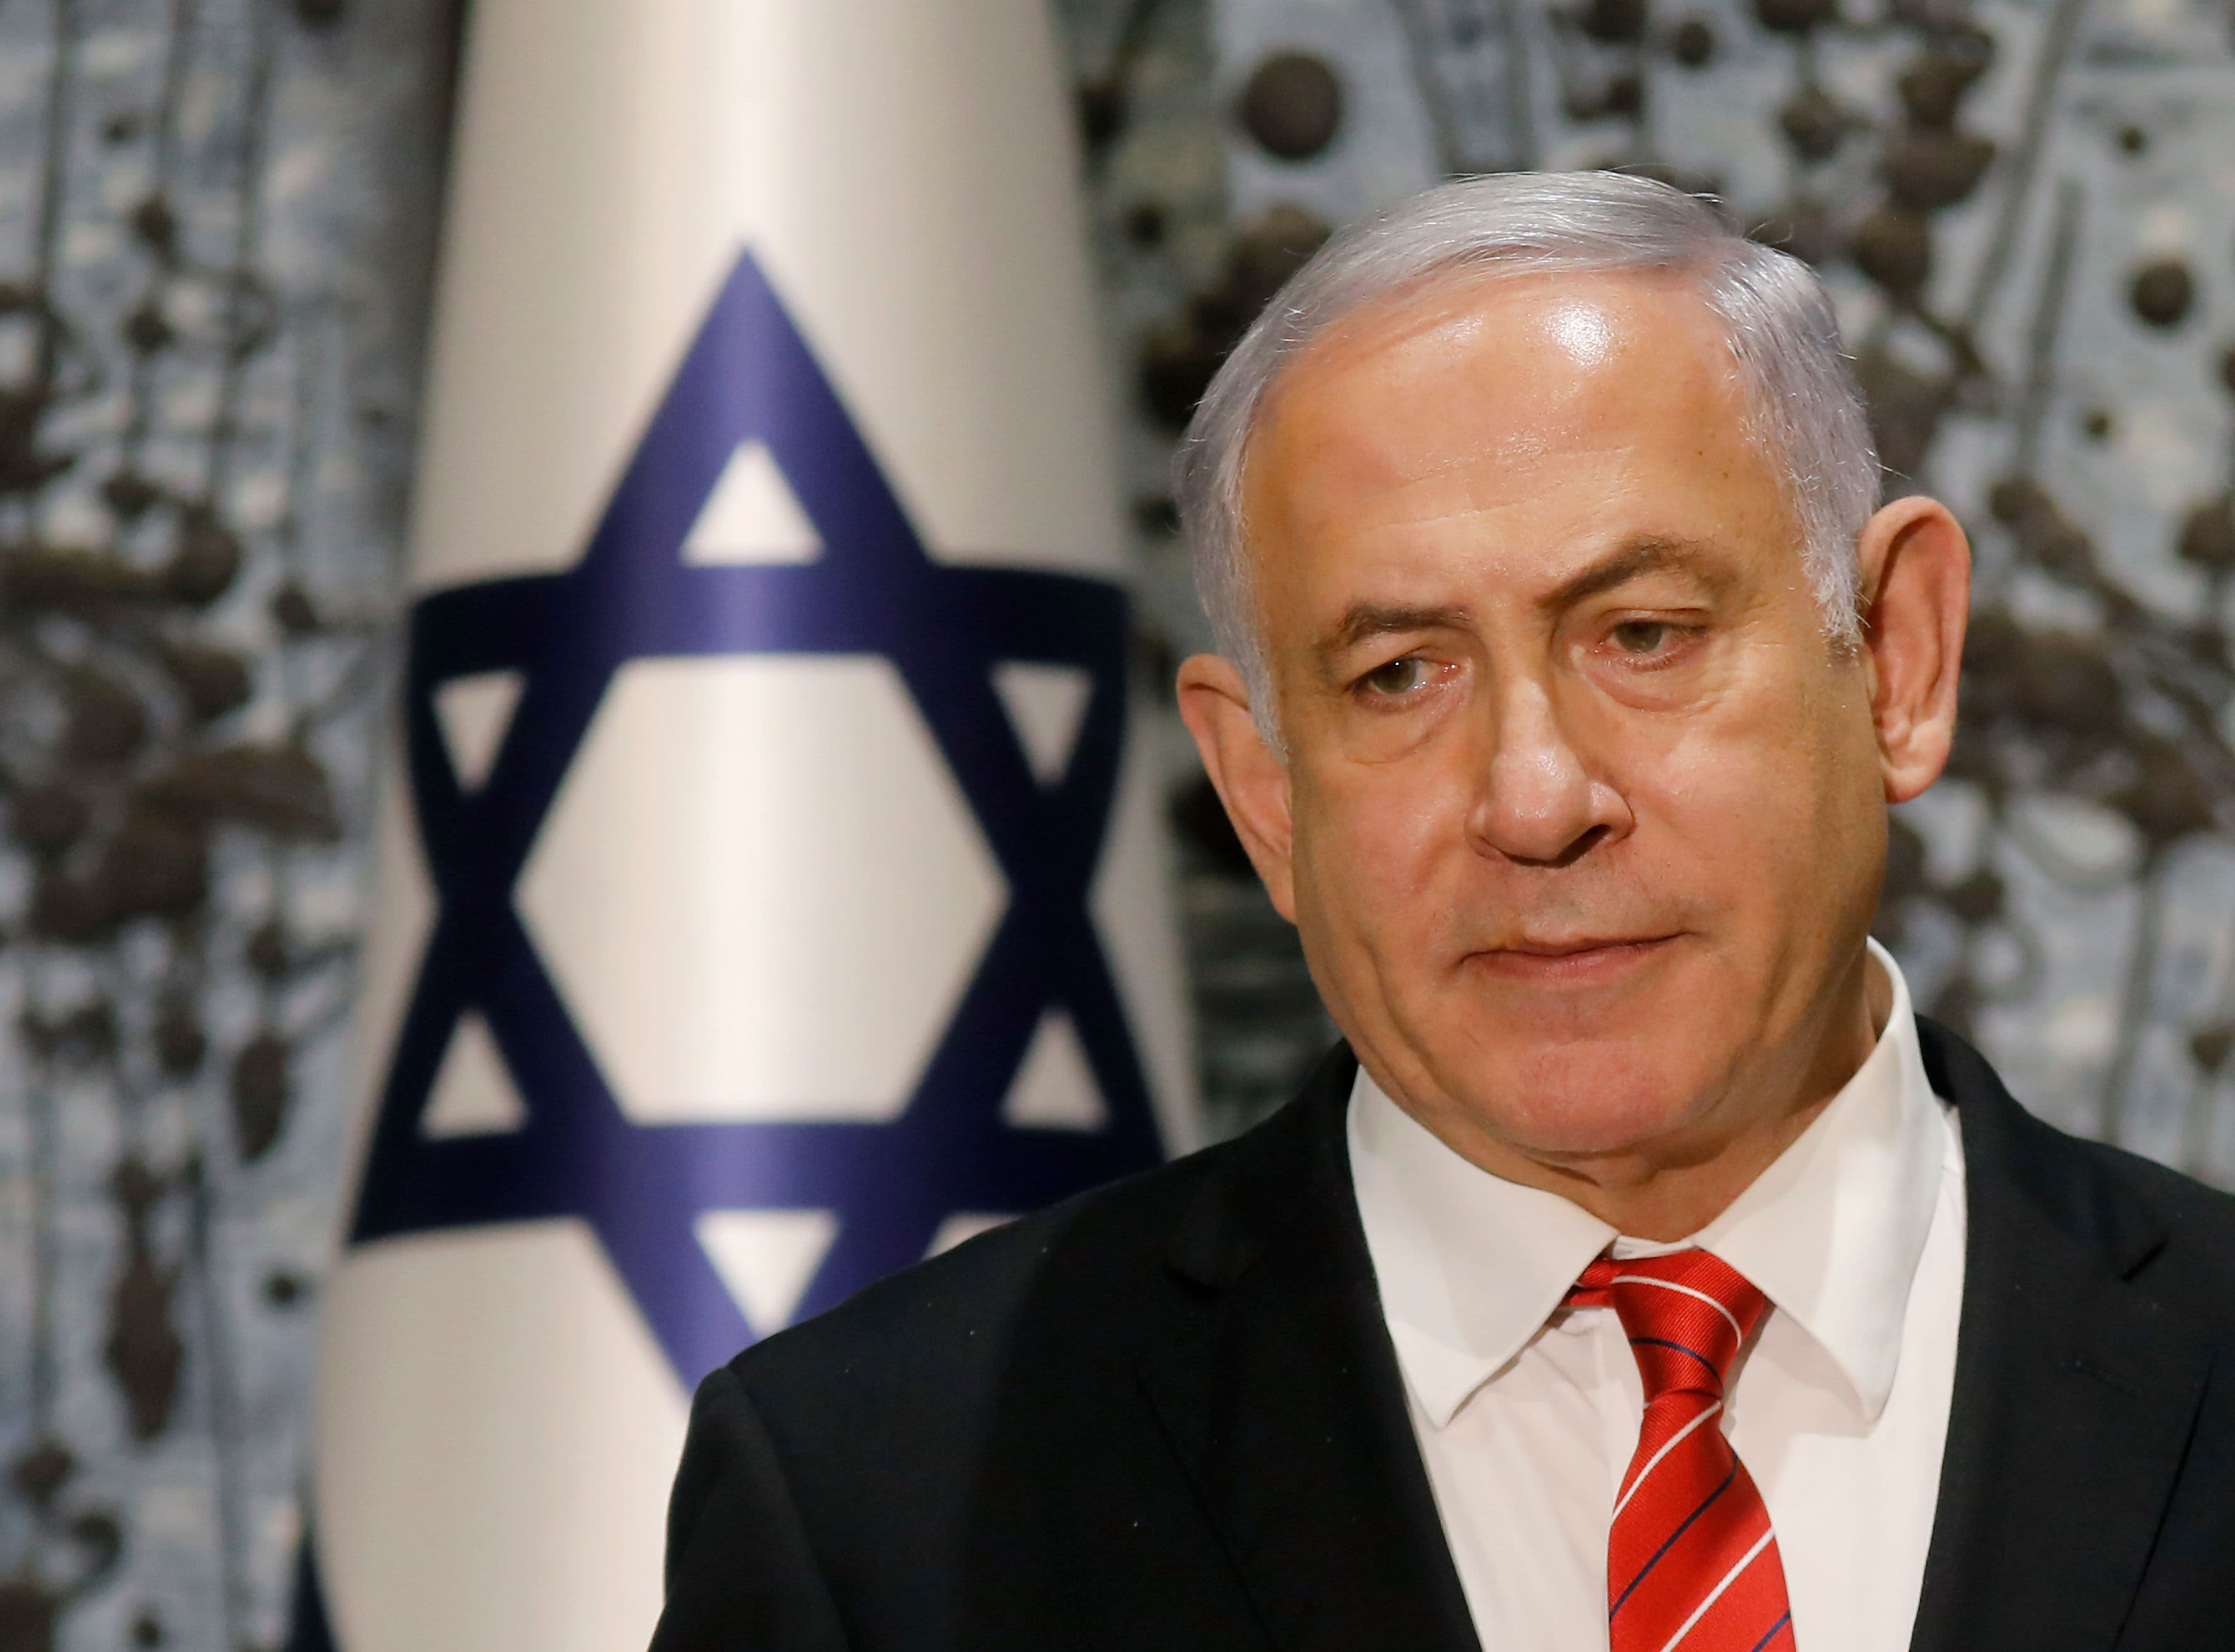 Israel's Netanyahu will seek parliamentary immunity from prosecution in corruption cases